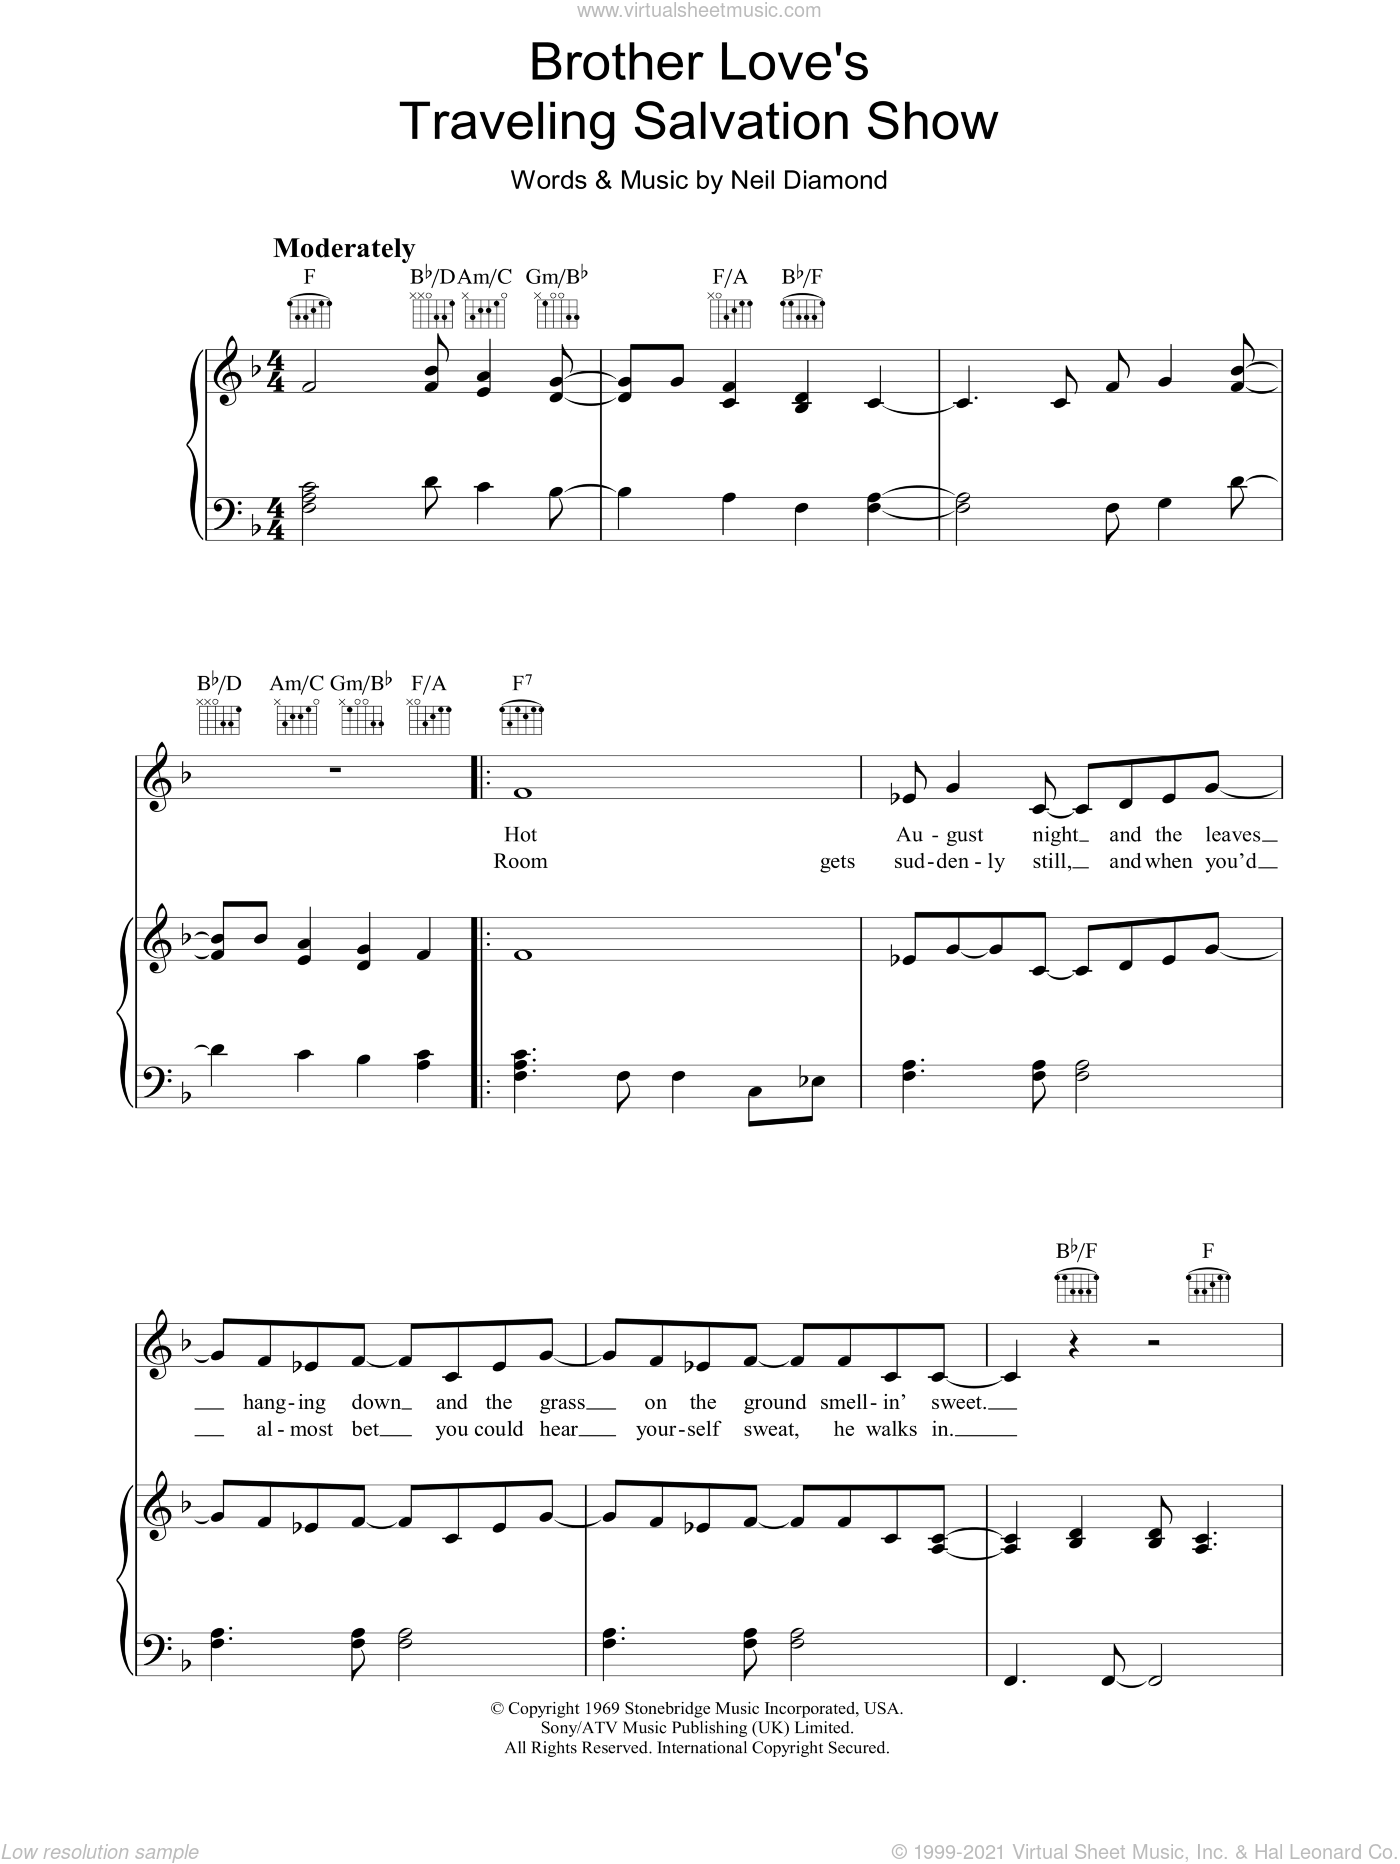 Brother Love's Travelling Salvation Show sheet music for voice, piano or guitar by Neil Diamond